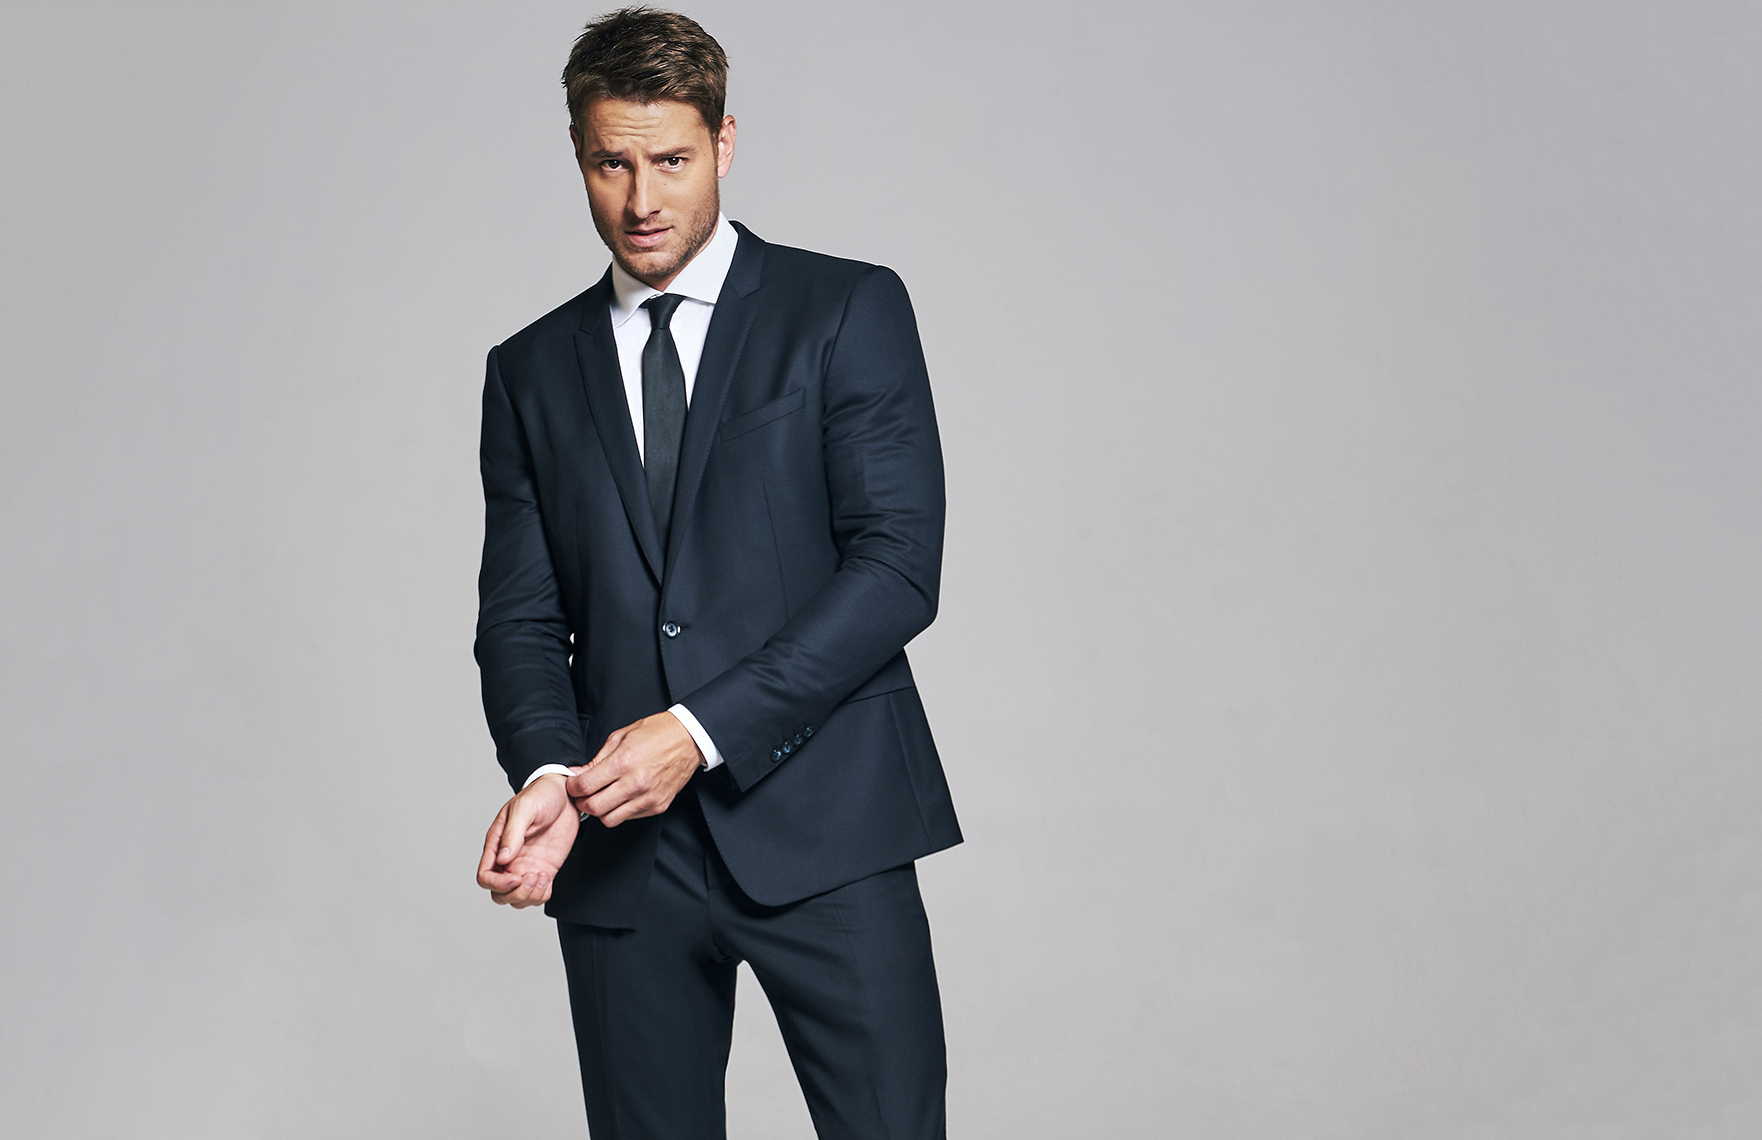 justin_hartley_DSC01183